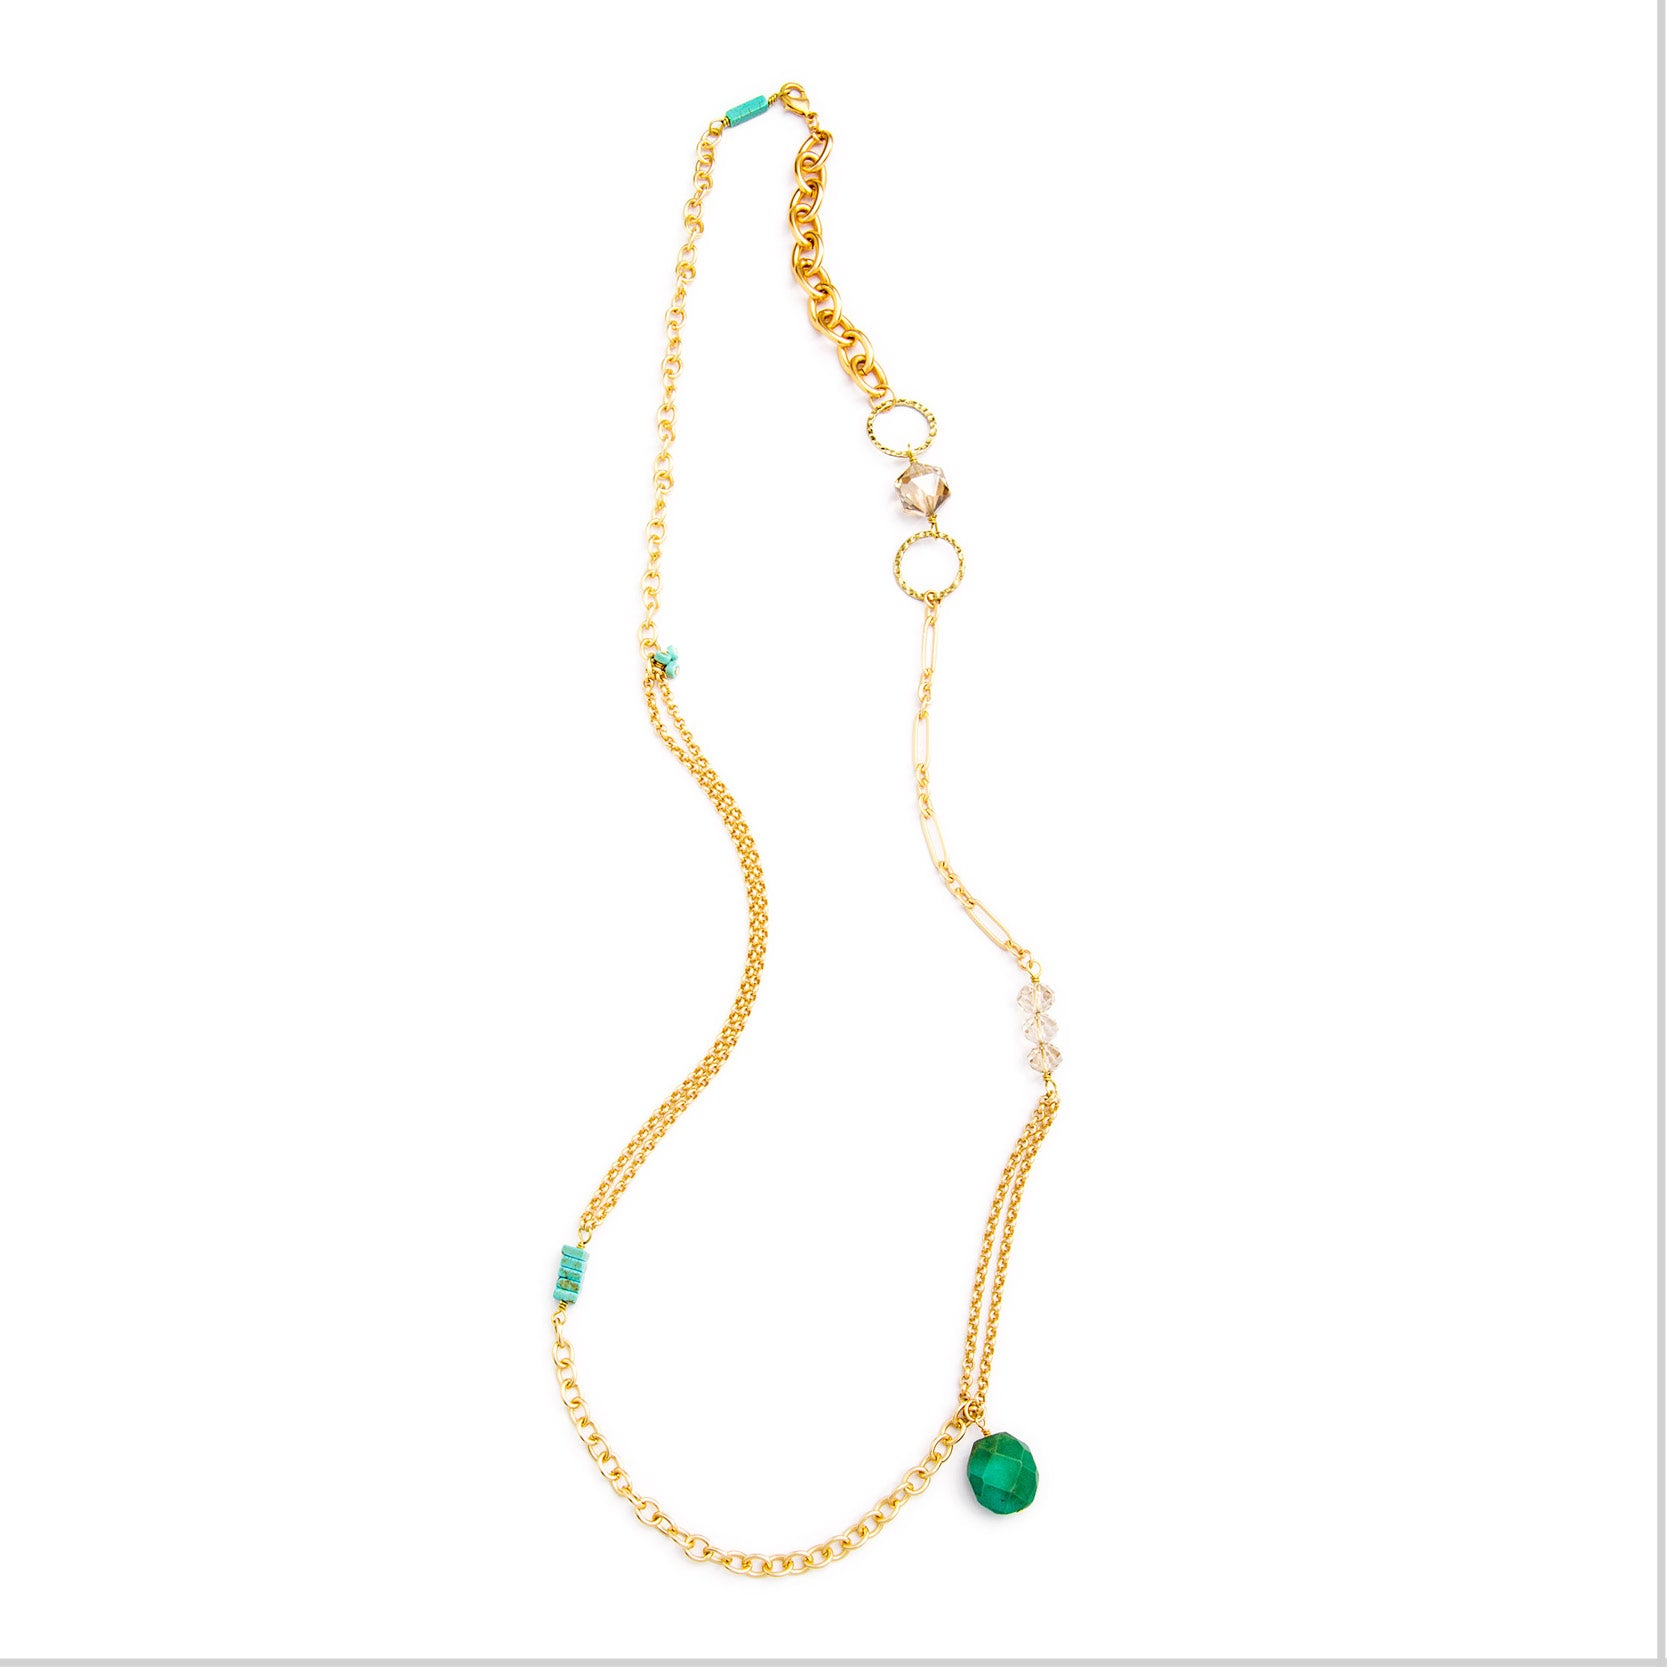 Variability Necklace